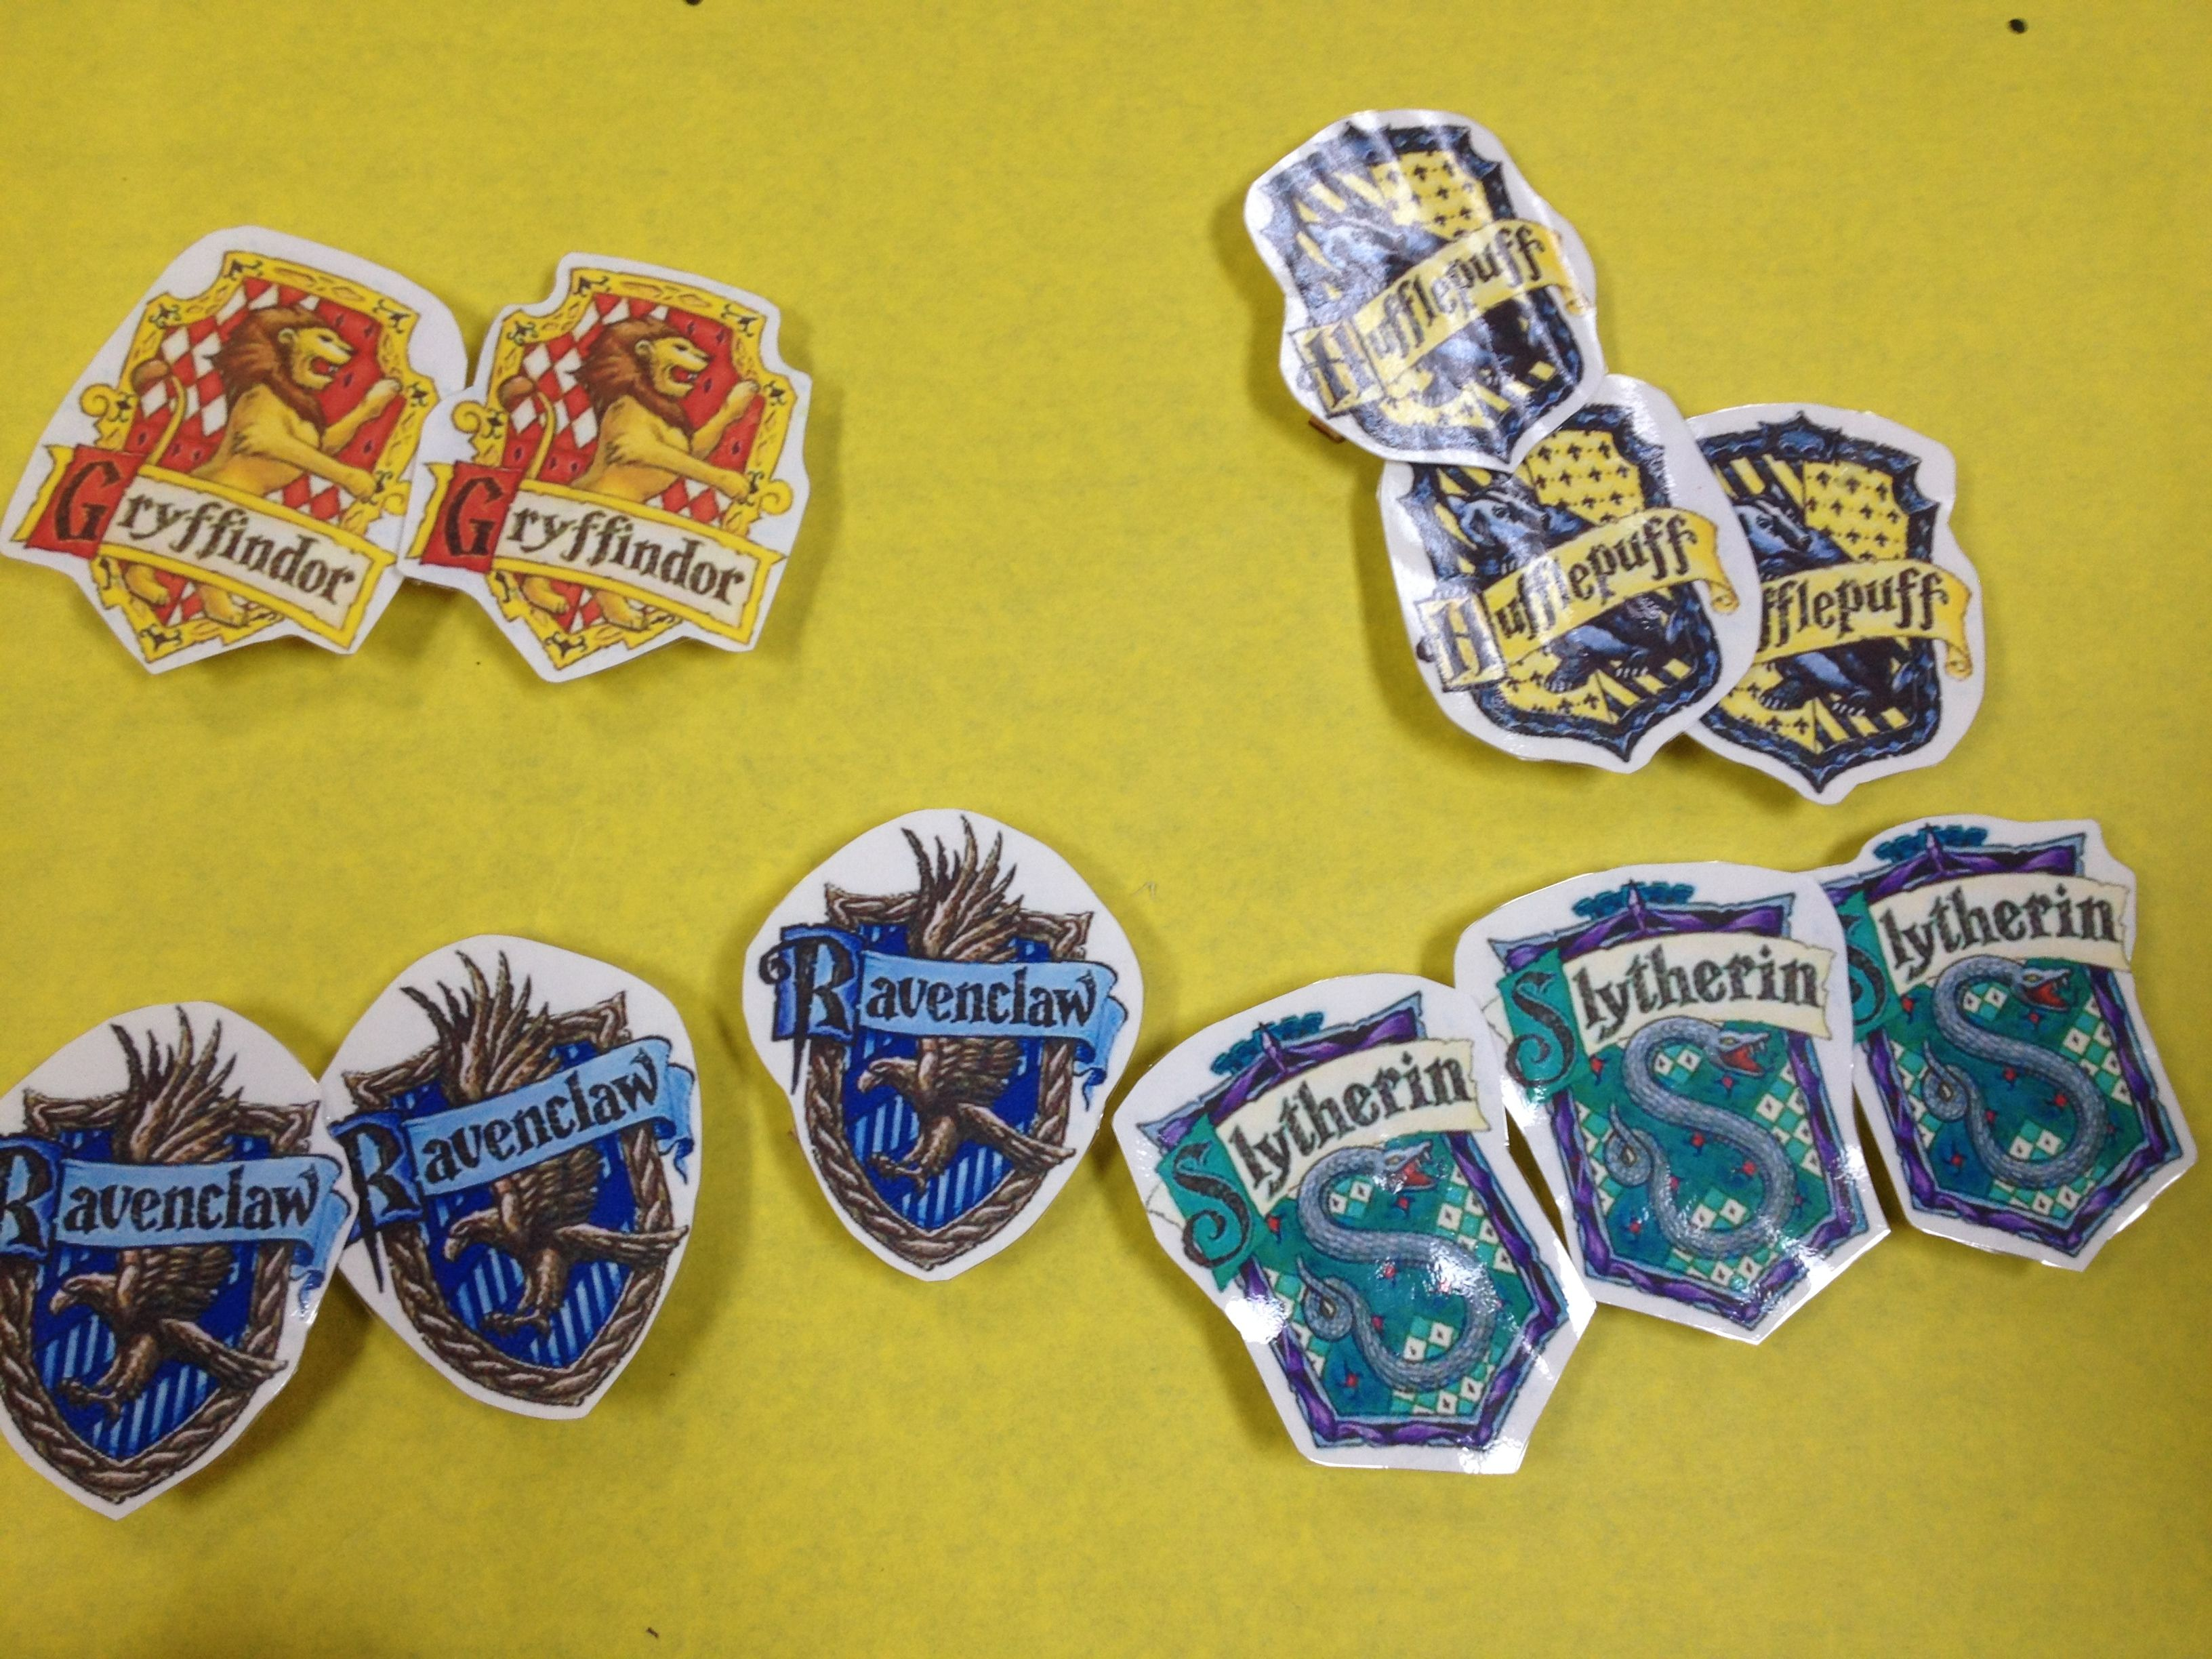 picture regarding Printable Hogwarts House Crests named Hogwarts property badges - printable crests very hot glued in the direction of